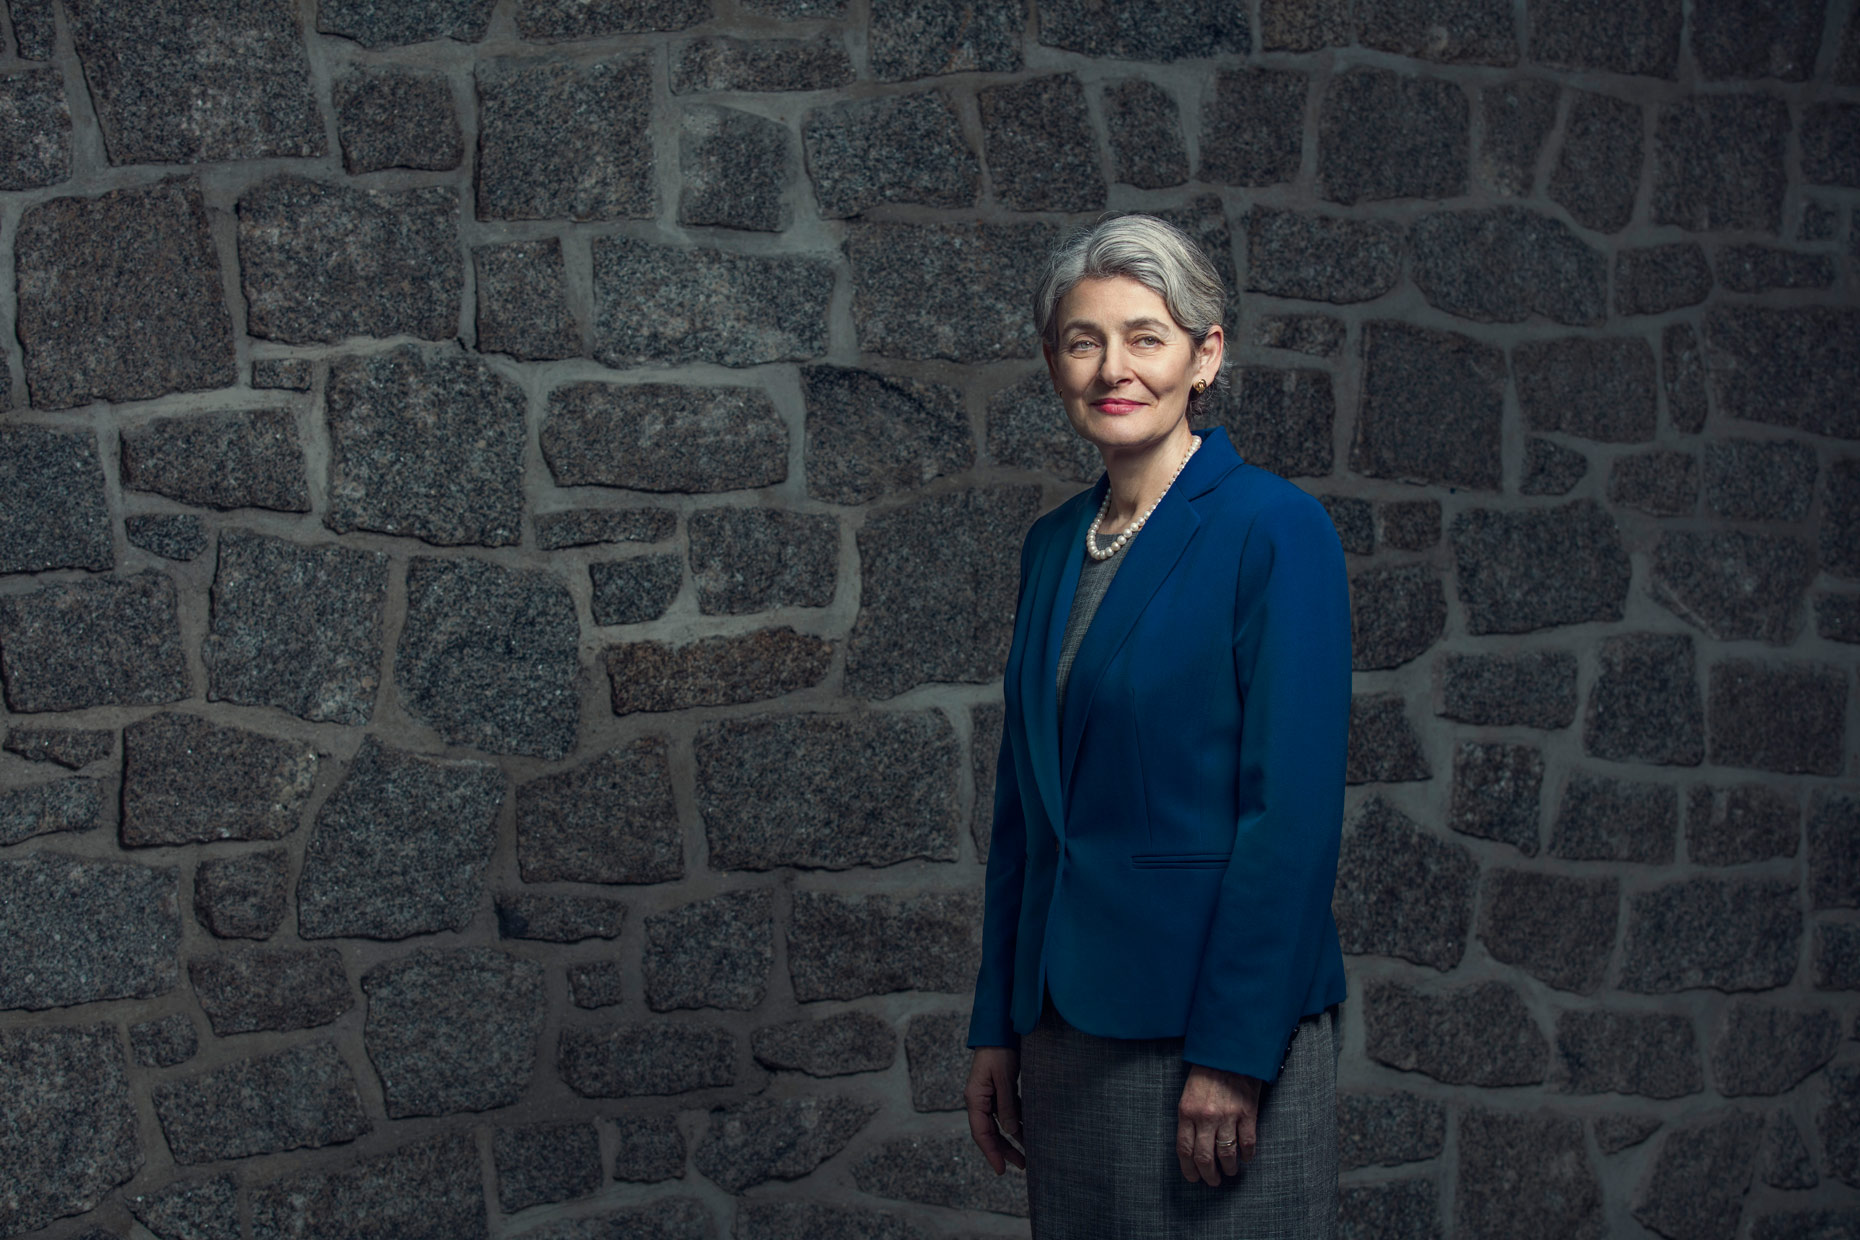 June 2016 - For The Guardian Weekend Magazine - UNESCO Director-General Irina Bokova